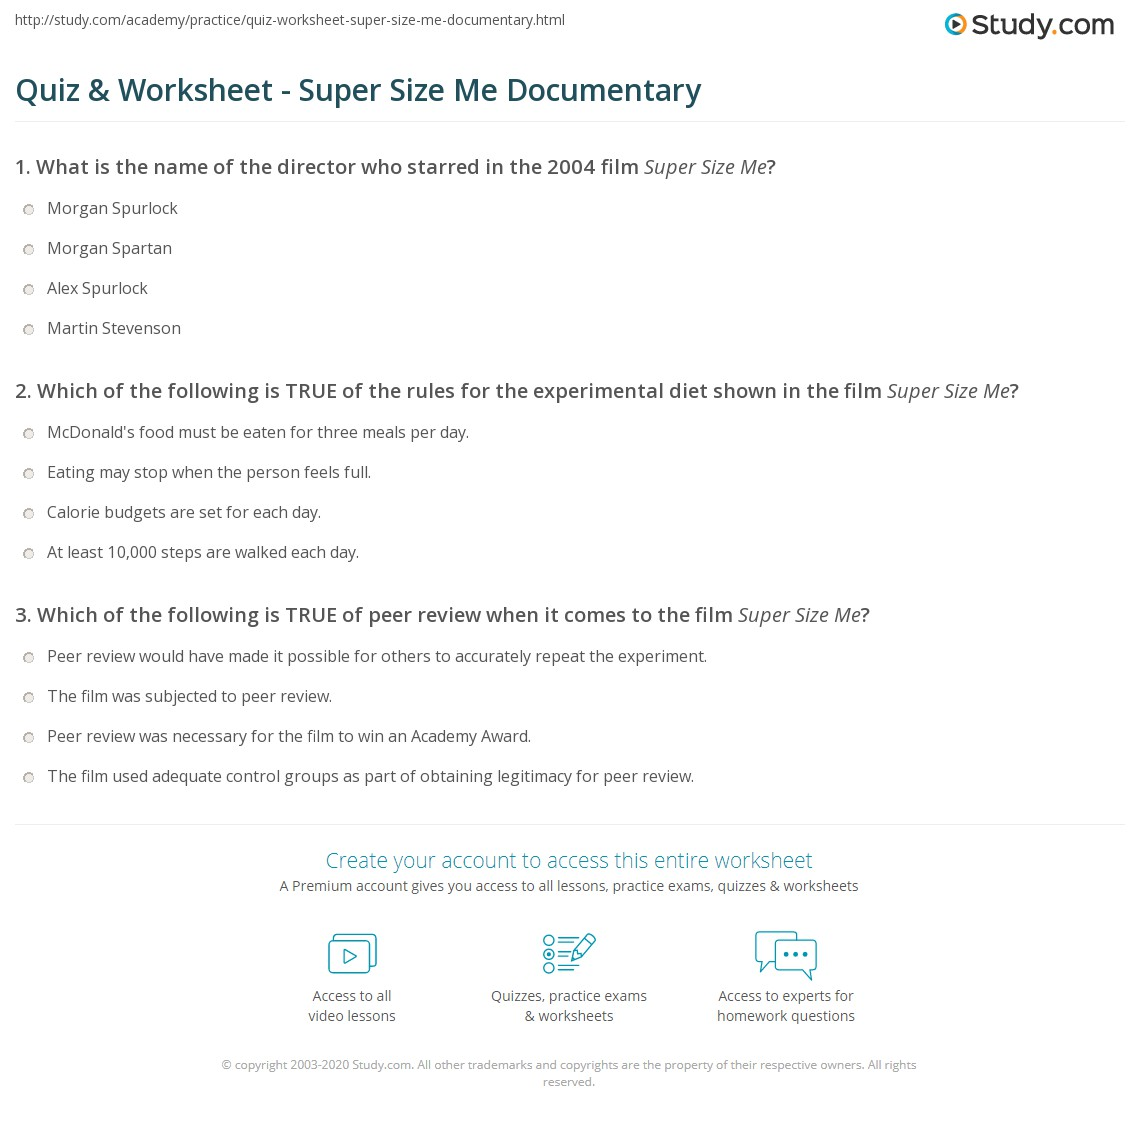 Quiz & Worksheet - Super Size Me Documentary | Study.com